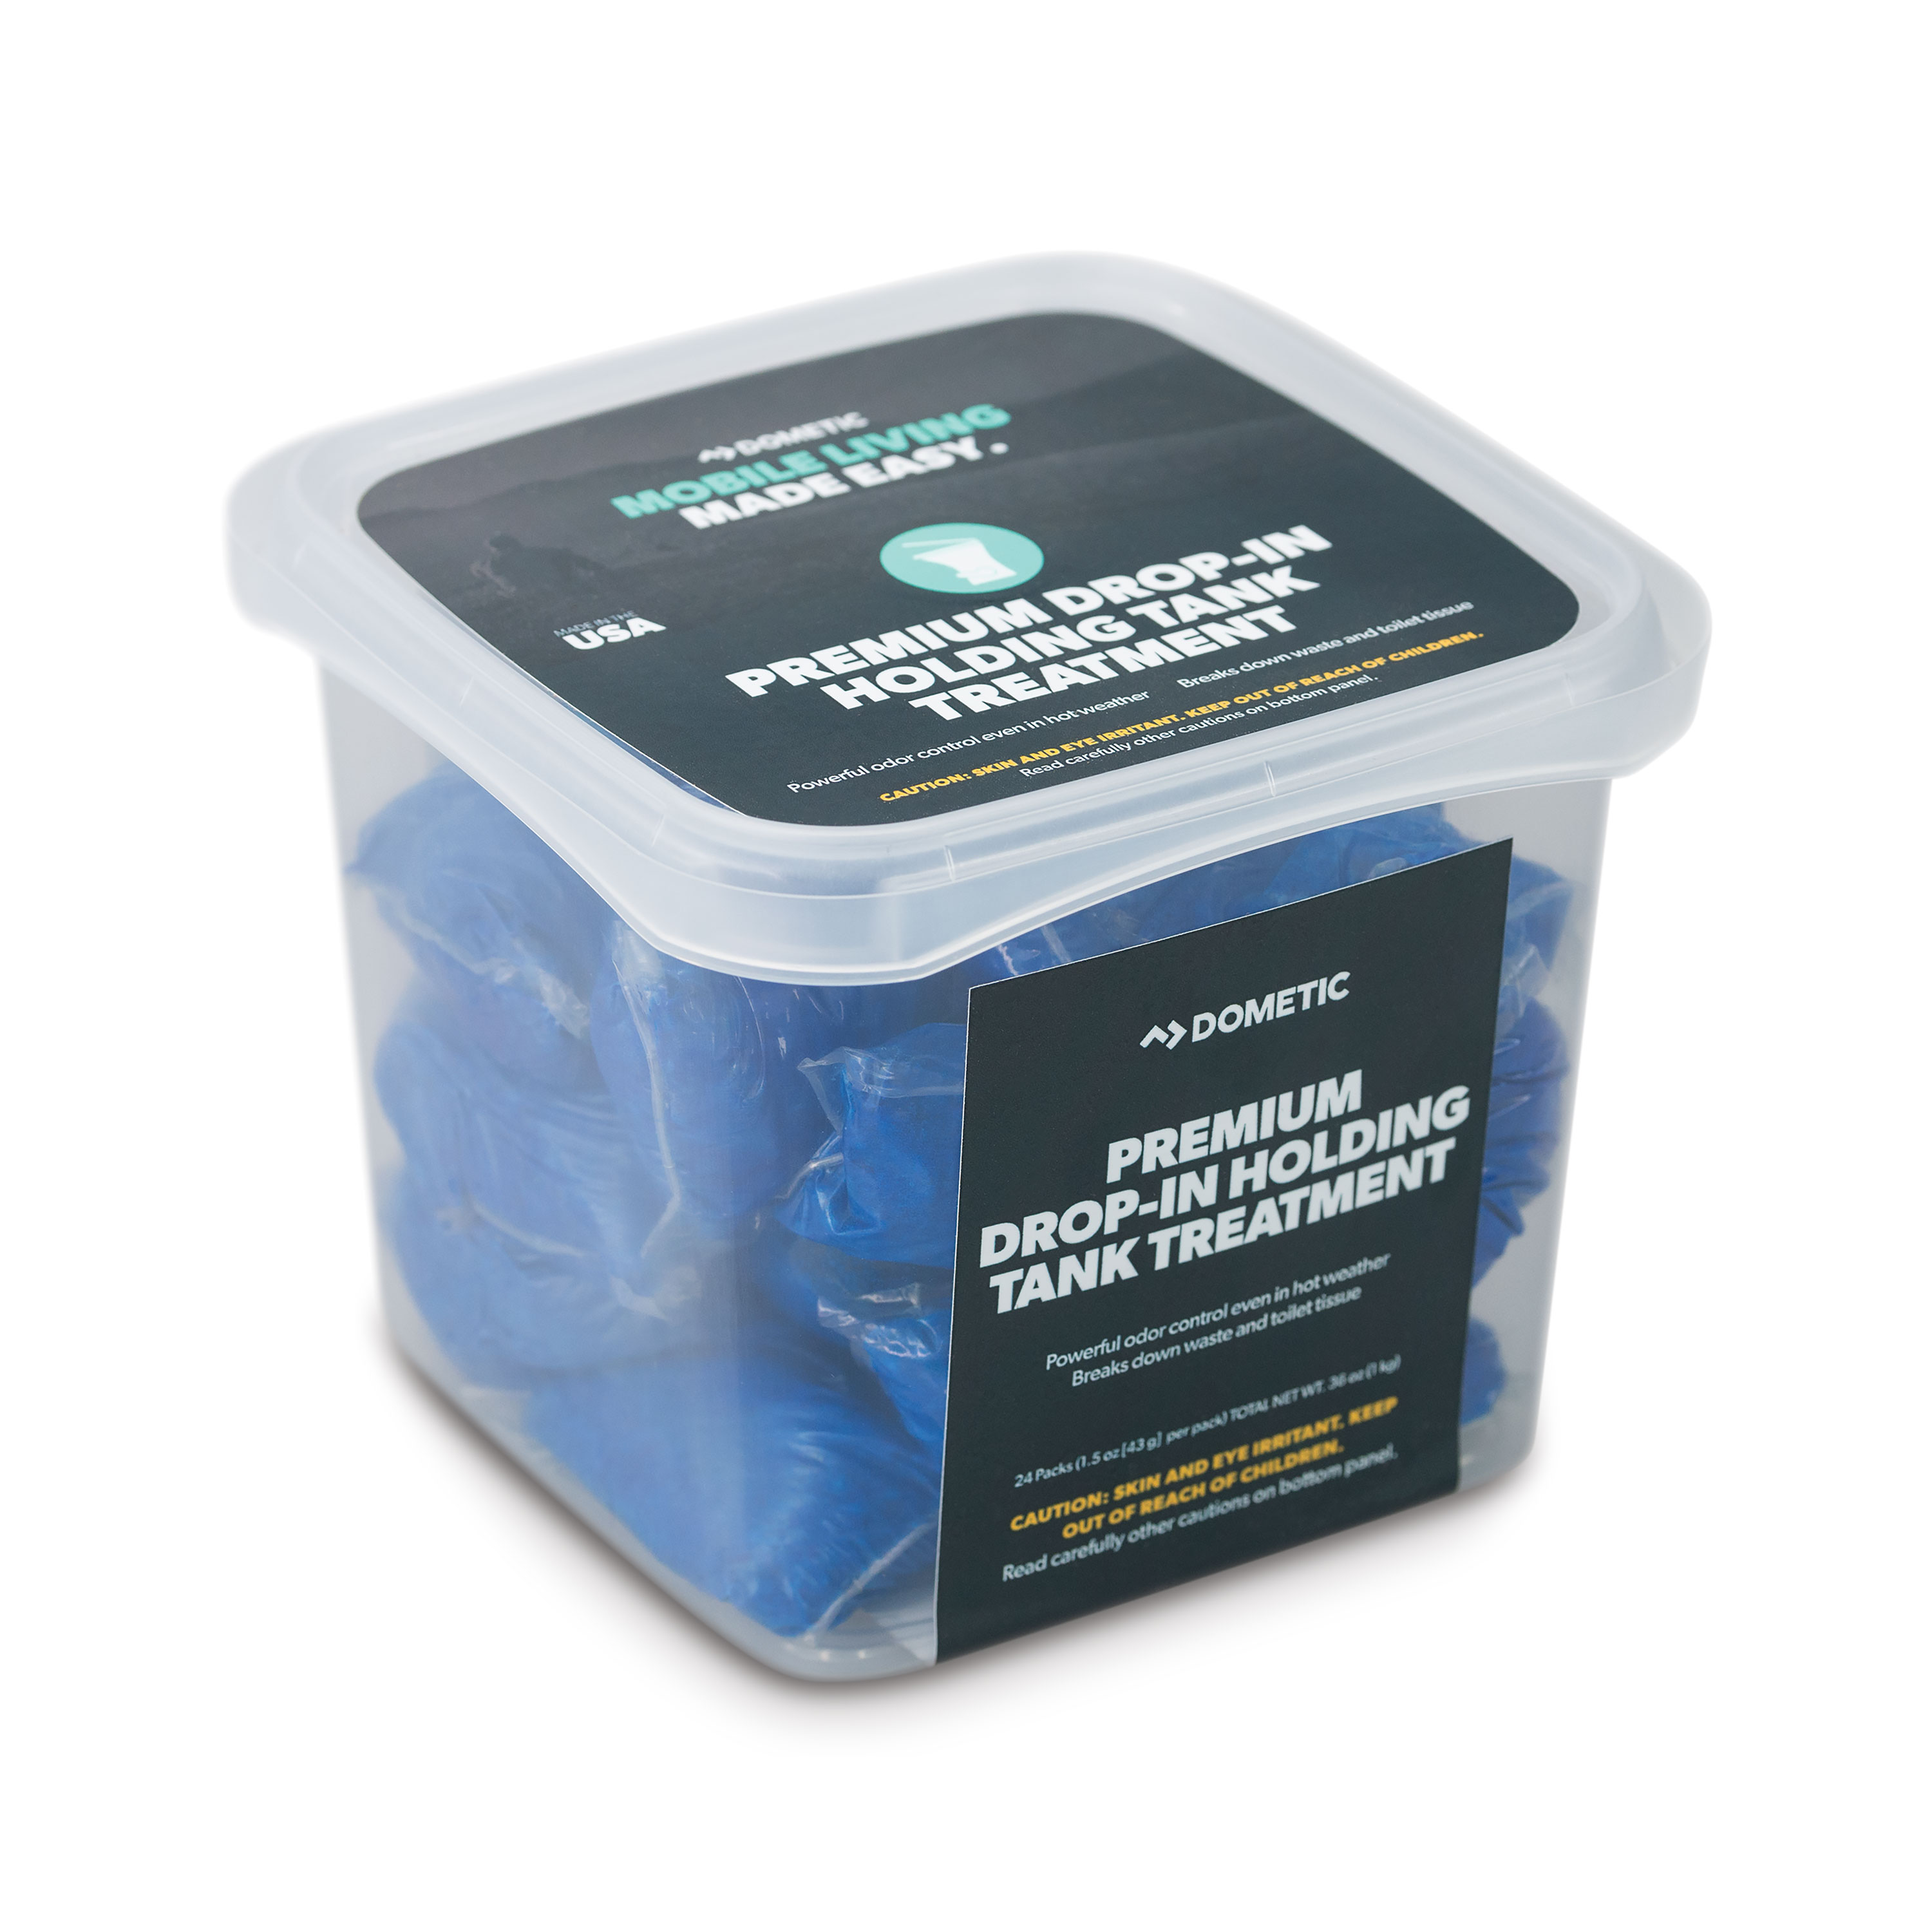 Dometic D1110002 D Line Premium Holding Tank Treatment Drop-In - Pack of 24